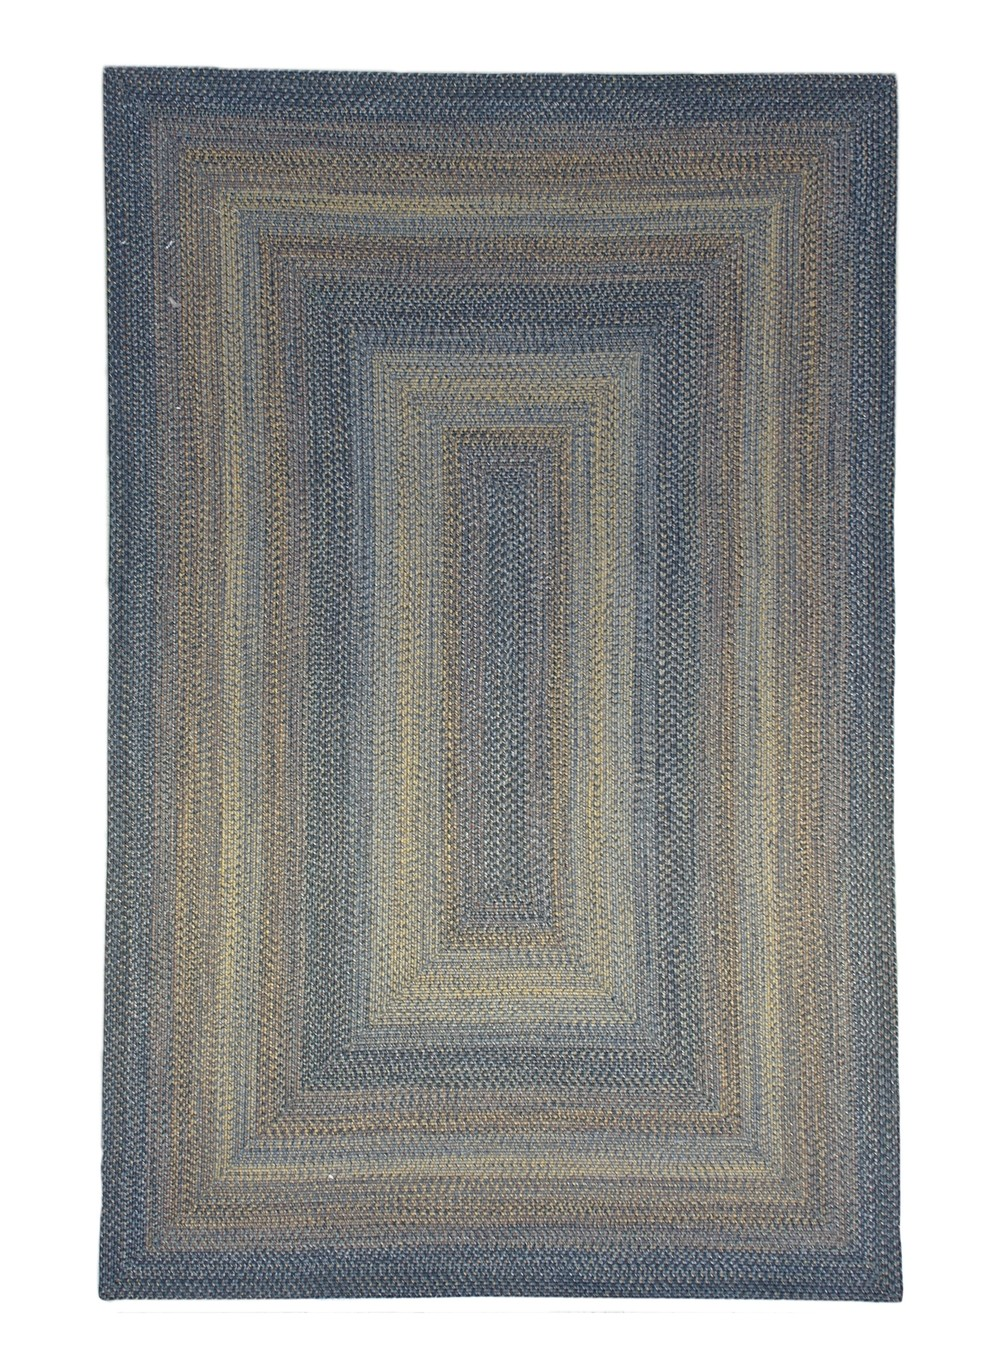 Square Outdoor Rugs Zoe Outdoor Rugs By Paola Lenti With